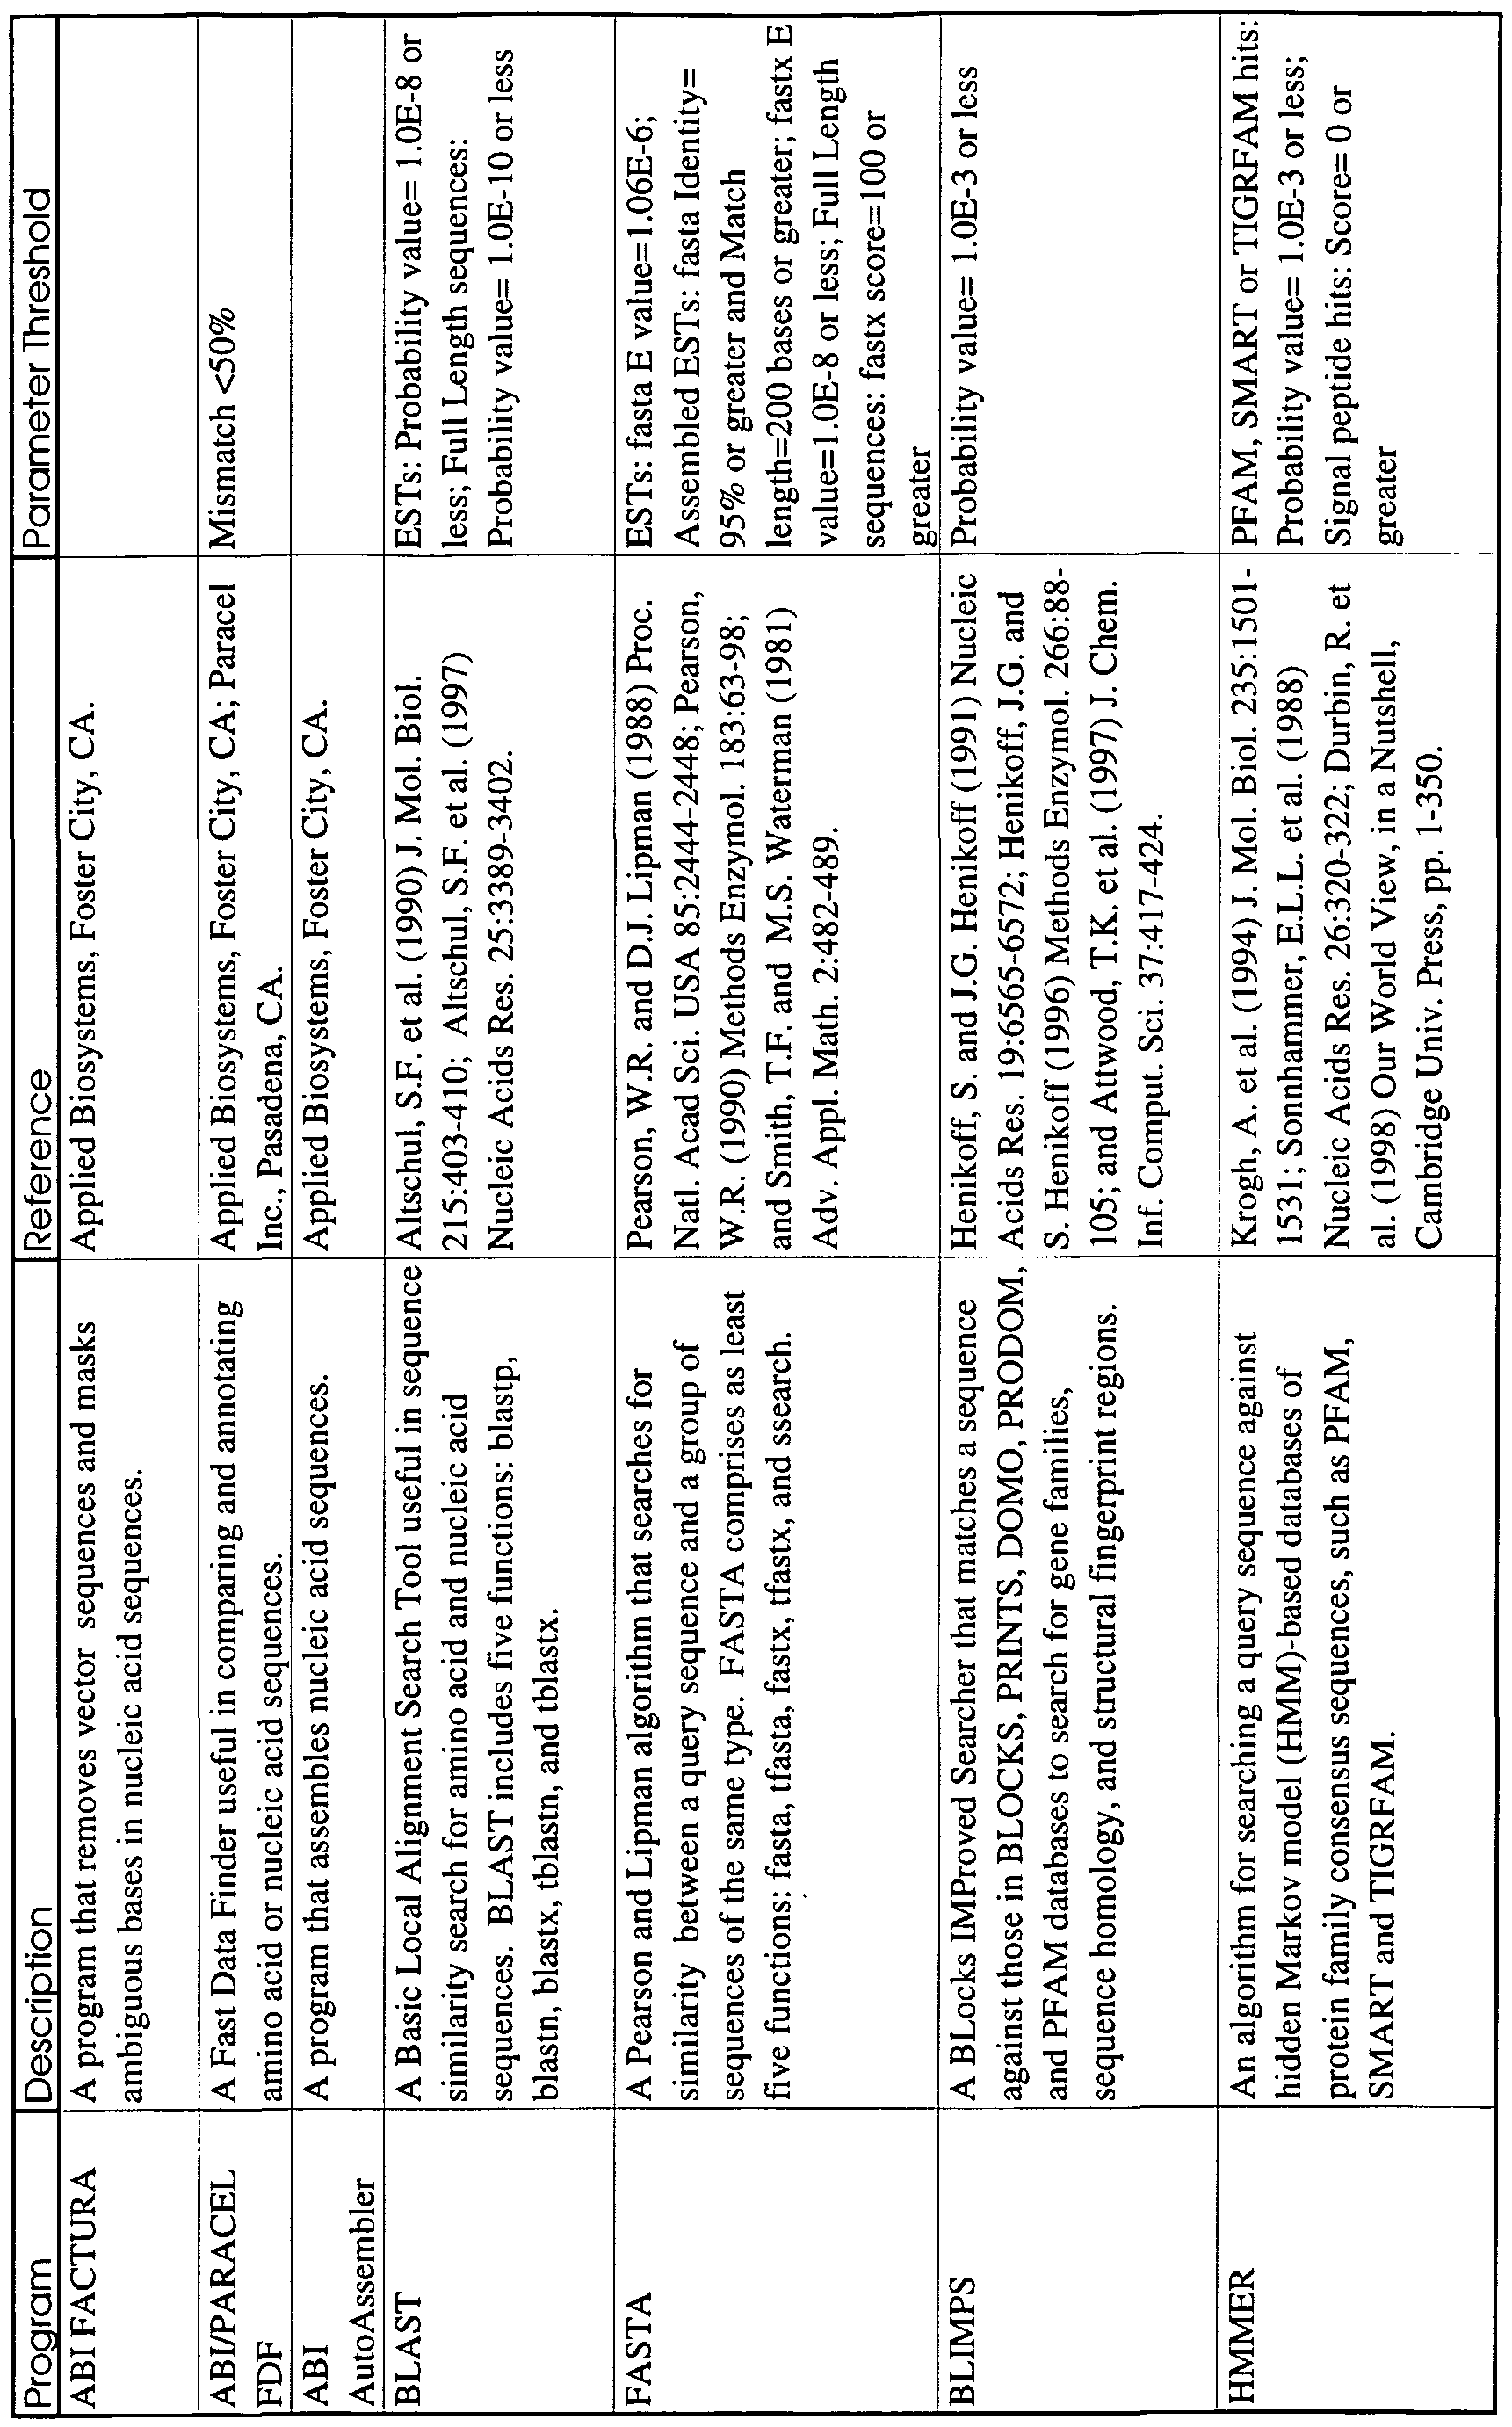 WO2002081636A2 - Protein modification and maintenance molecules